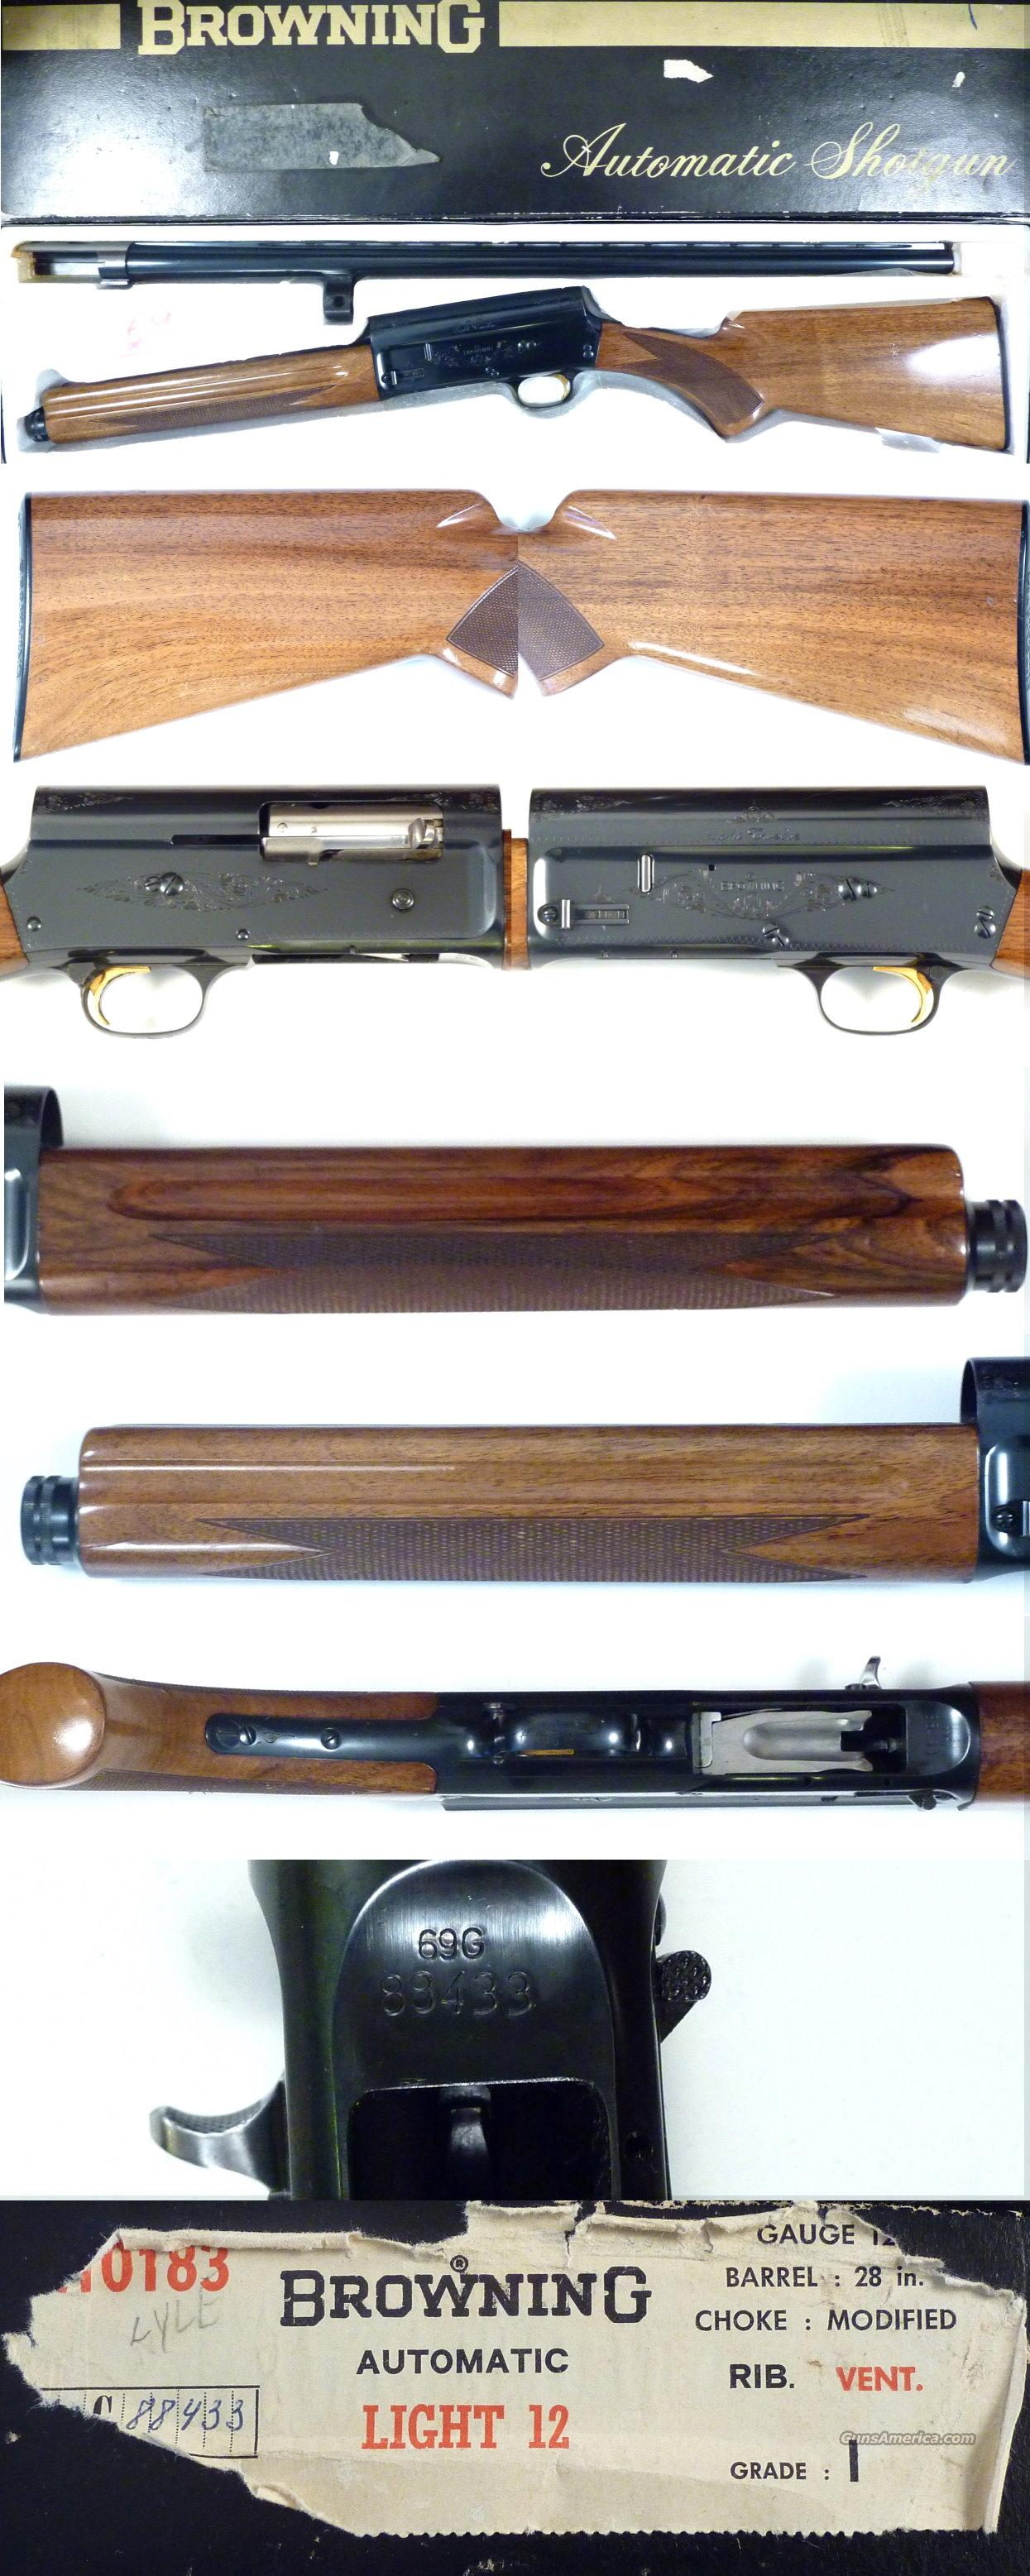 '69 Belgium Browning A5 Light 12 in original box  Guns > Shotguns > Browning Shotguns > Autoloaders > Hunting